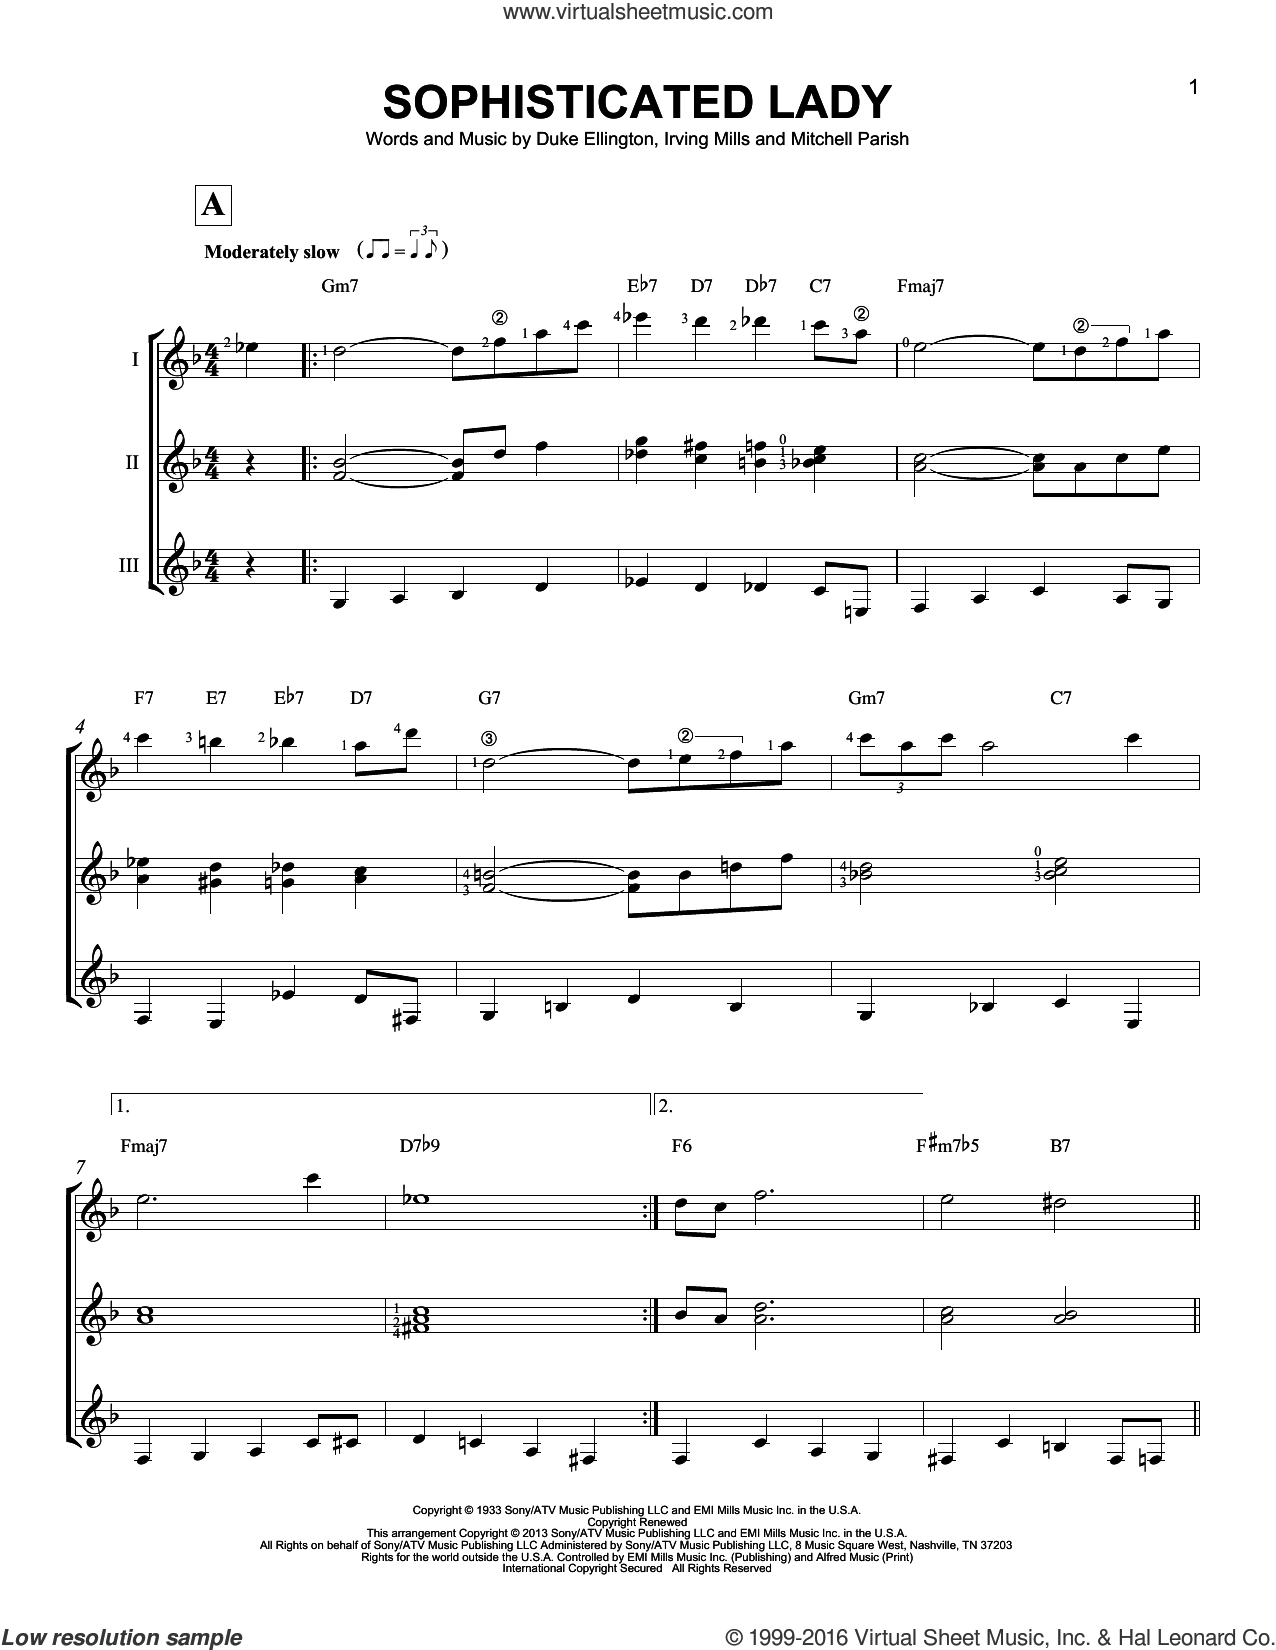 Sophisticated Lady sheet music for guitar ensemble by Mitchell Parish, Duke Ellington and Irving Mills. Score Image Preview.